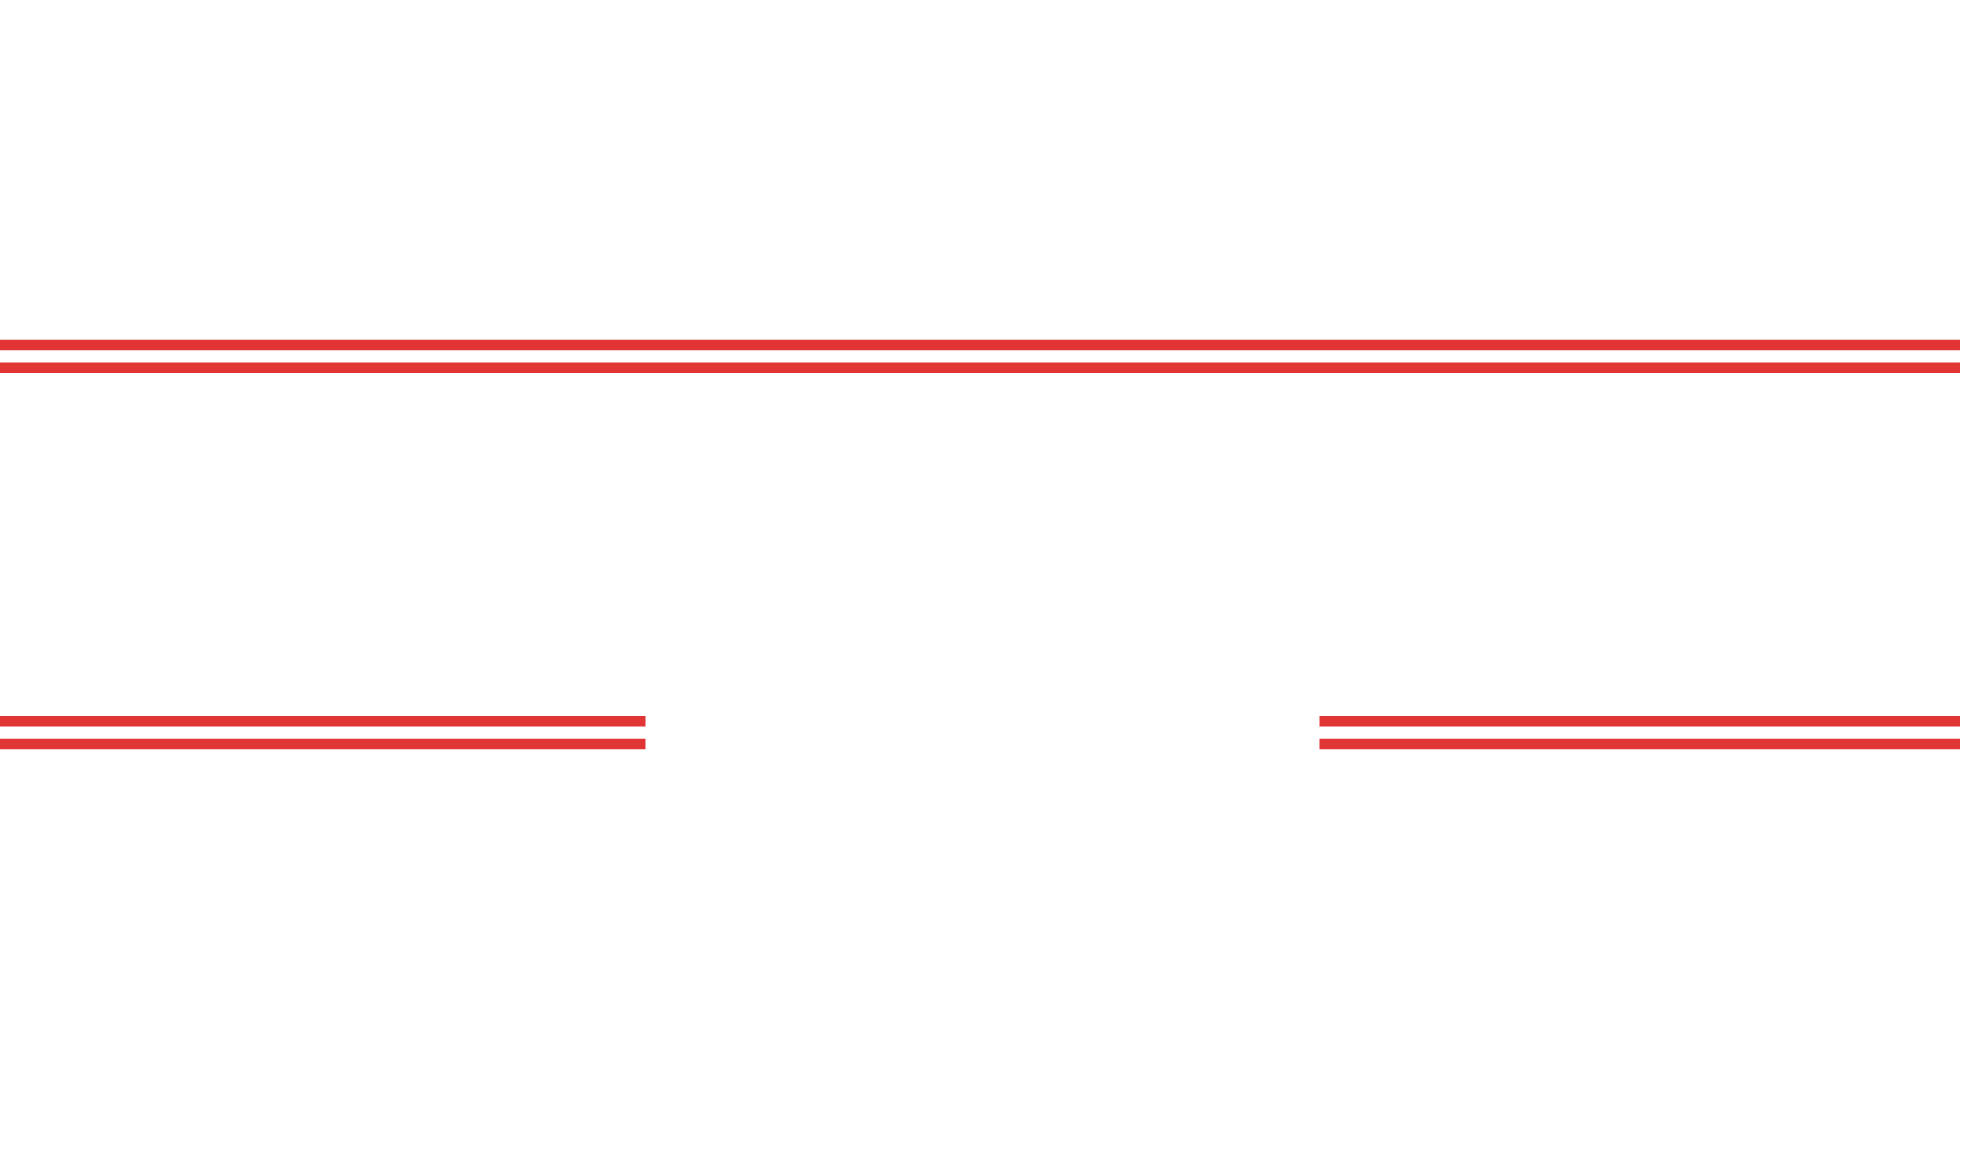 Legends Pizza